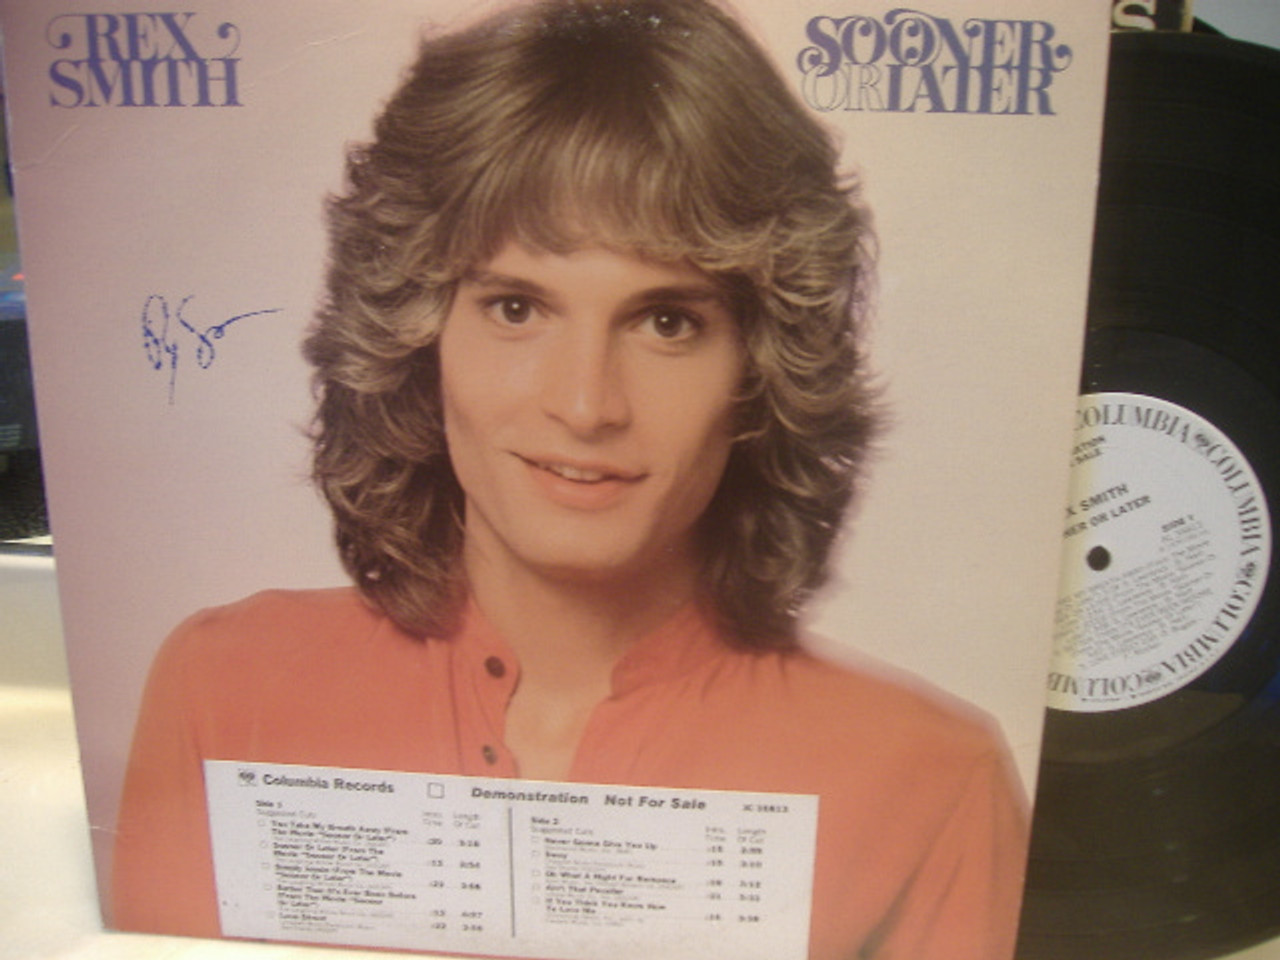 Smith, Rex LP Signed Autograph Sooner Or Later